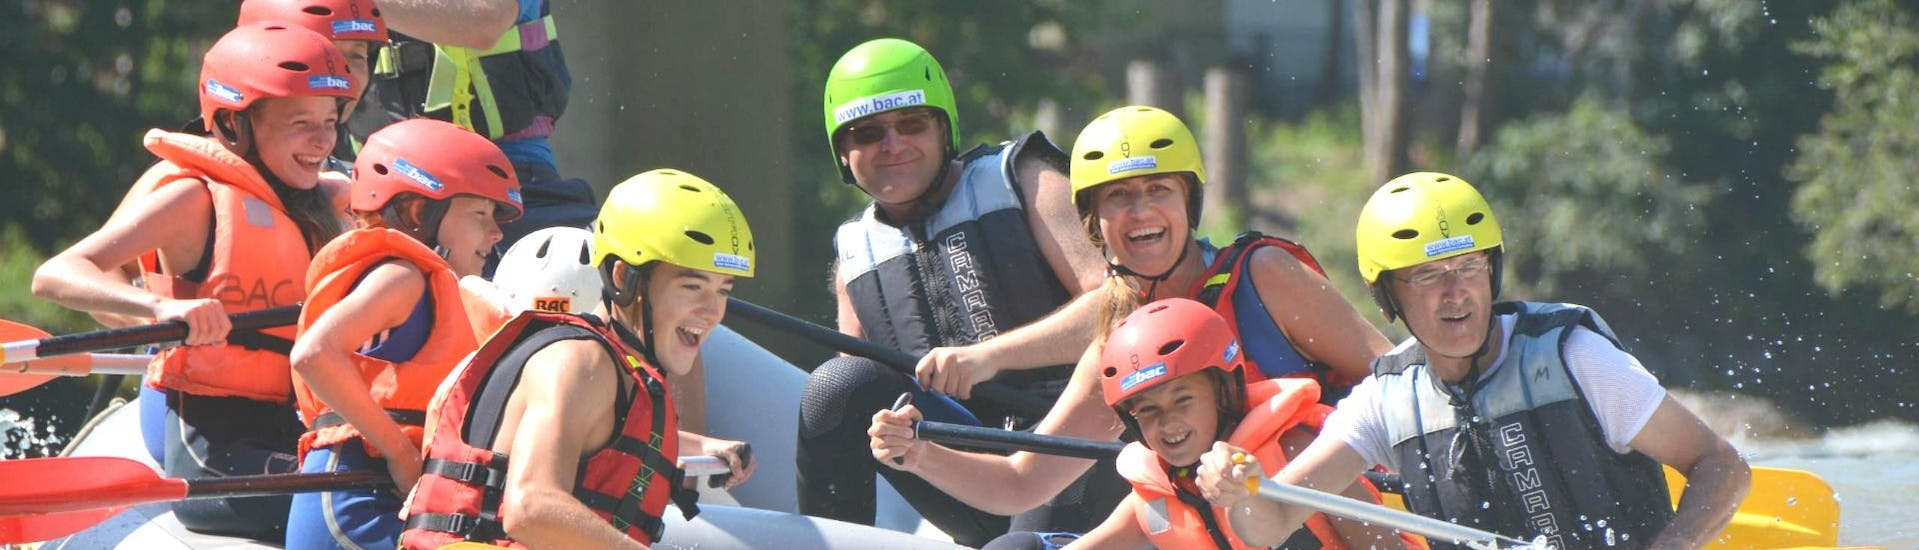 "A family is tackling cascades on a raft during the Rafting ""Classic"" - Enns with the help of an experienced rafting guide from best adventure company."